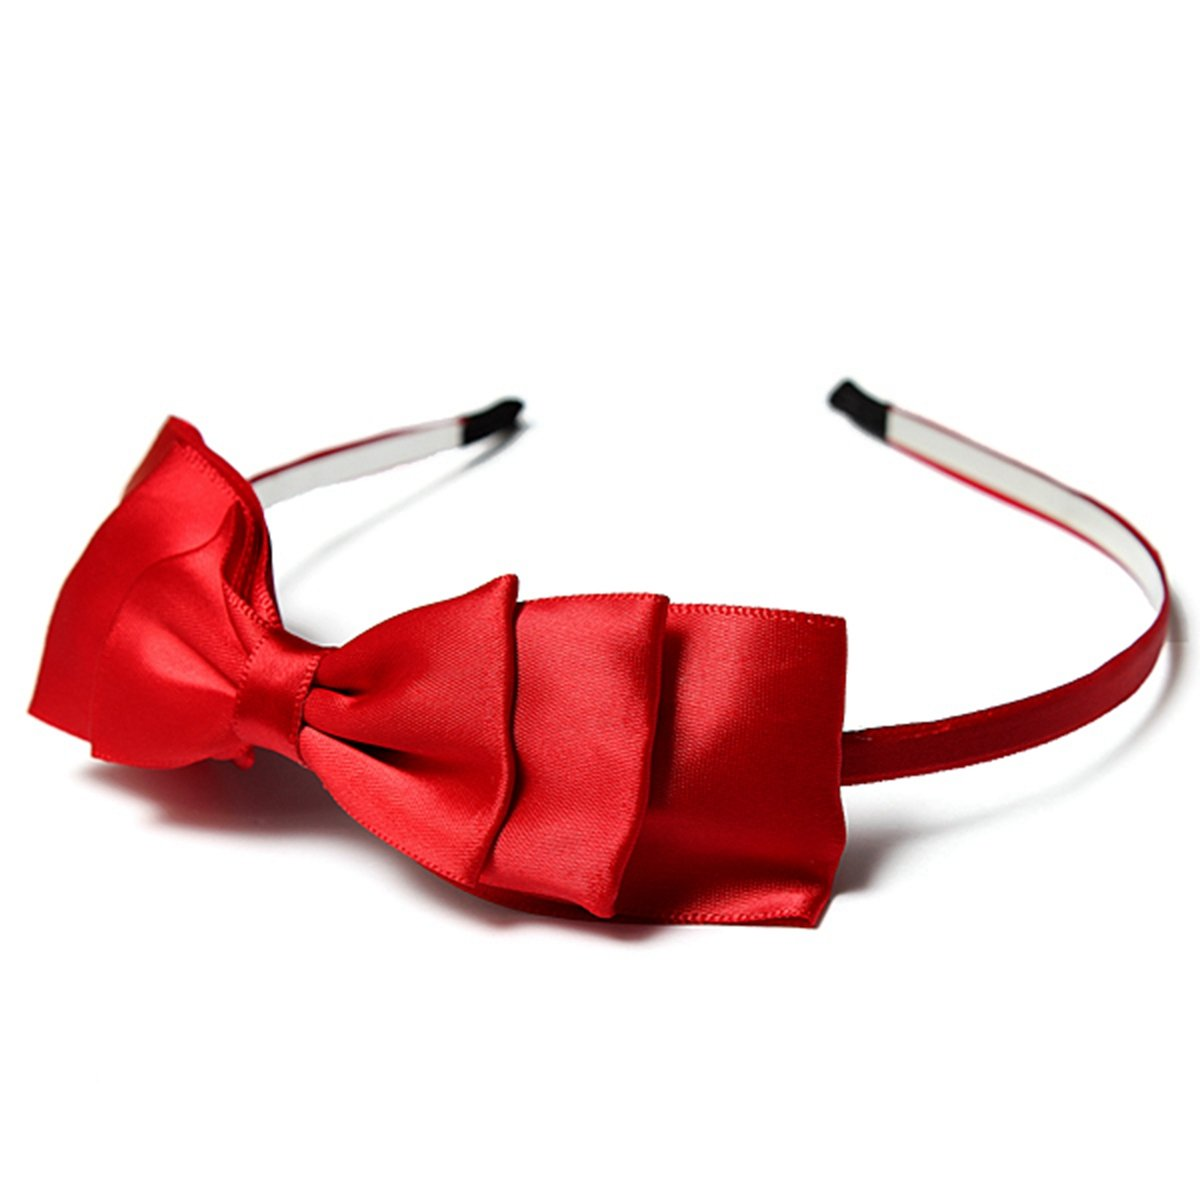 Bow Hairband Soft Elastic Bowknot Headband Hair Accessories For Children Adults Red Spare No Cost At Any Cost